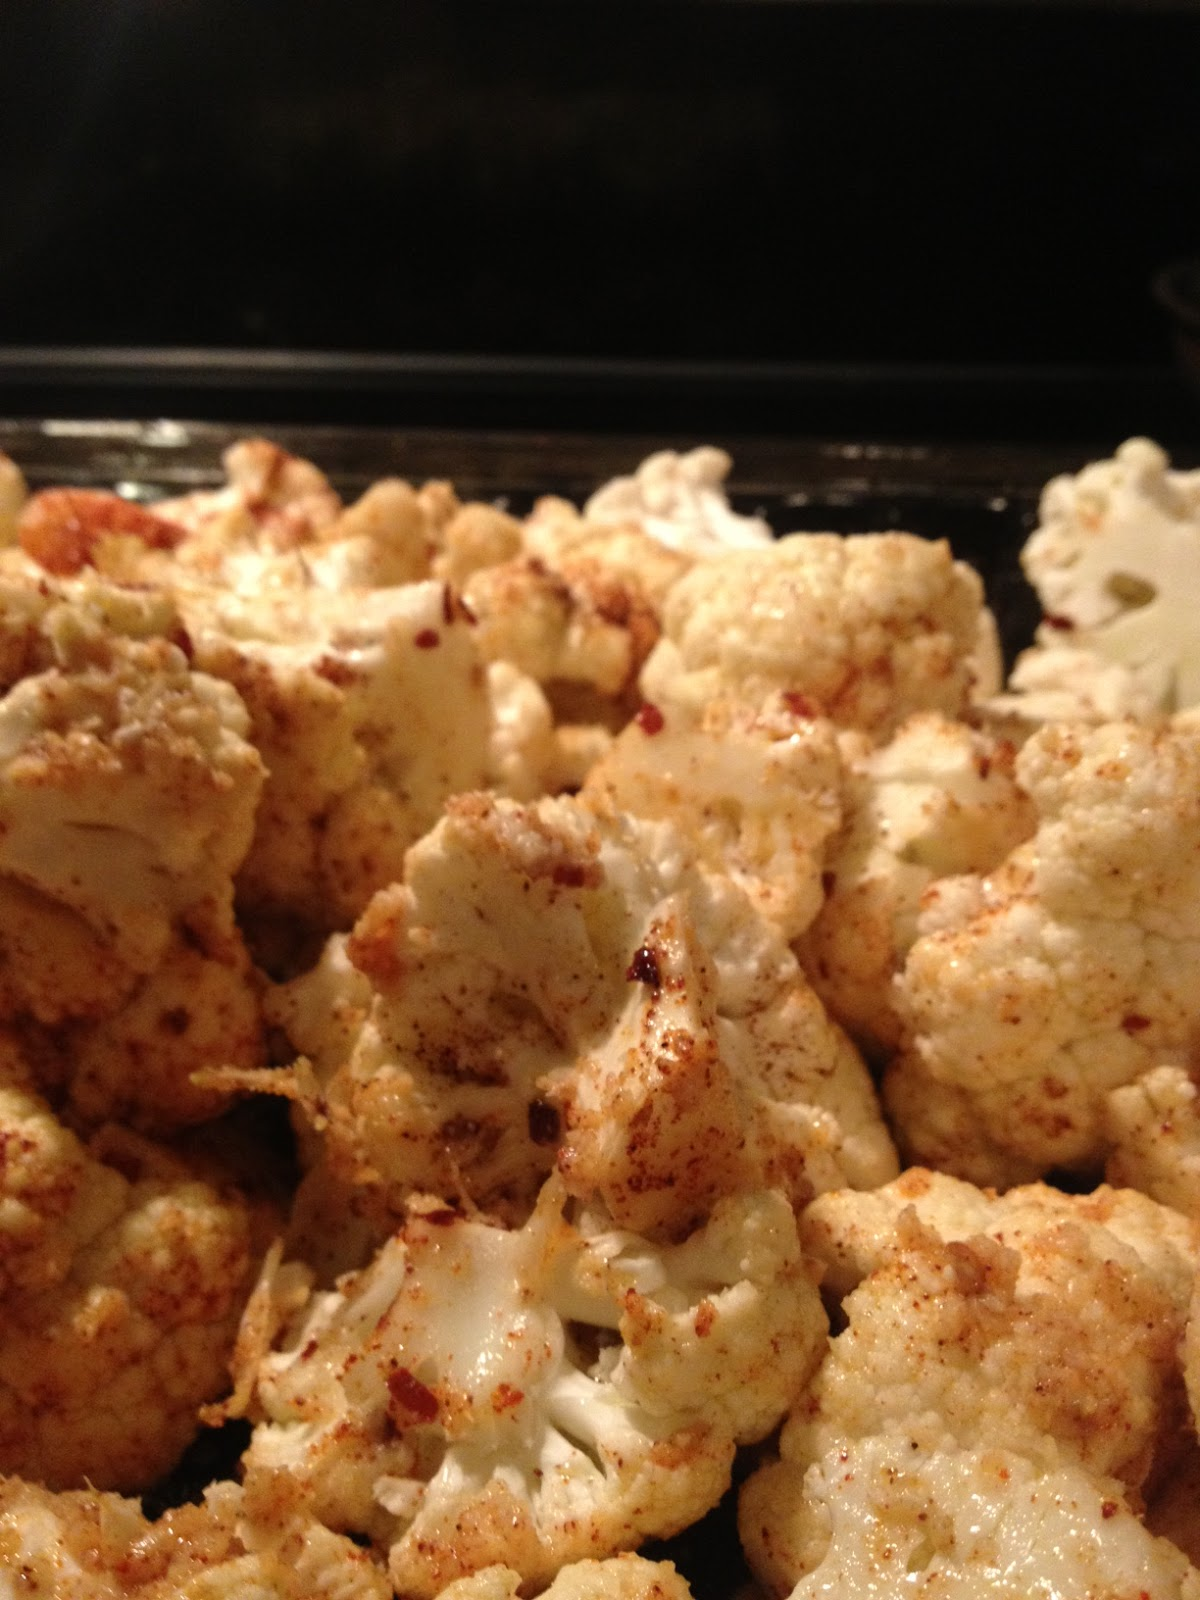 OMG Low carb!?: Slow roasted cauliflower and red pepper